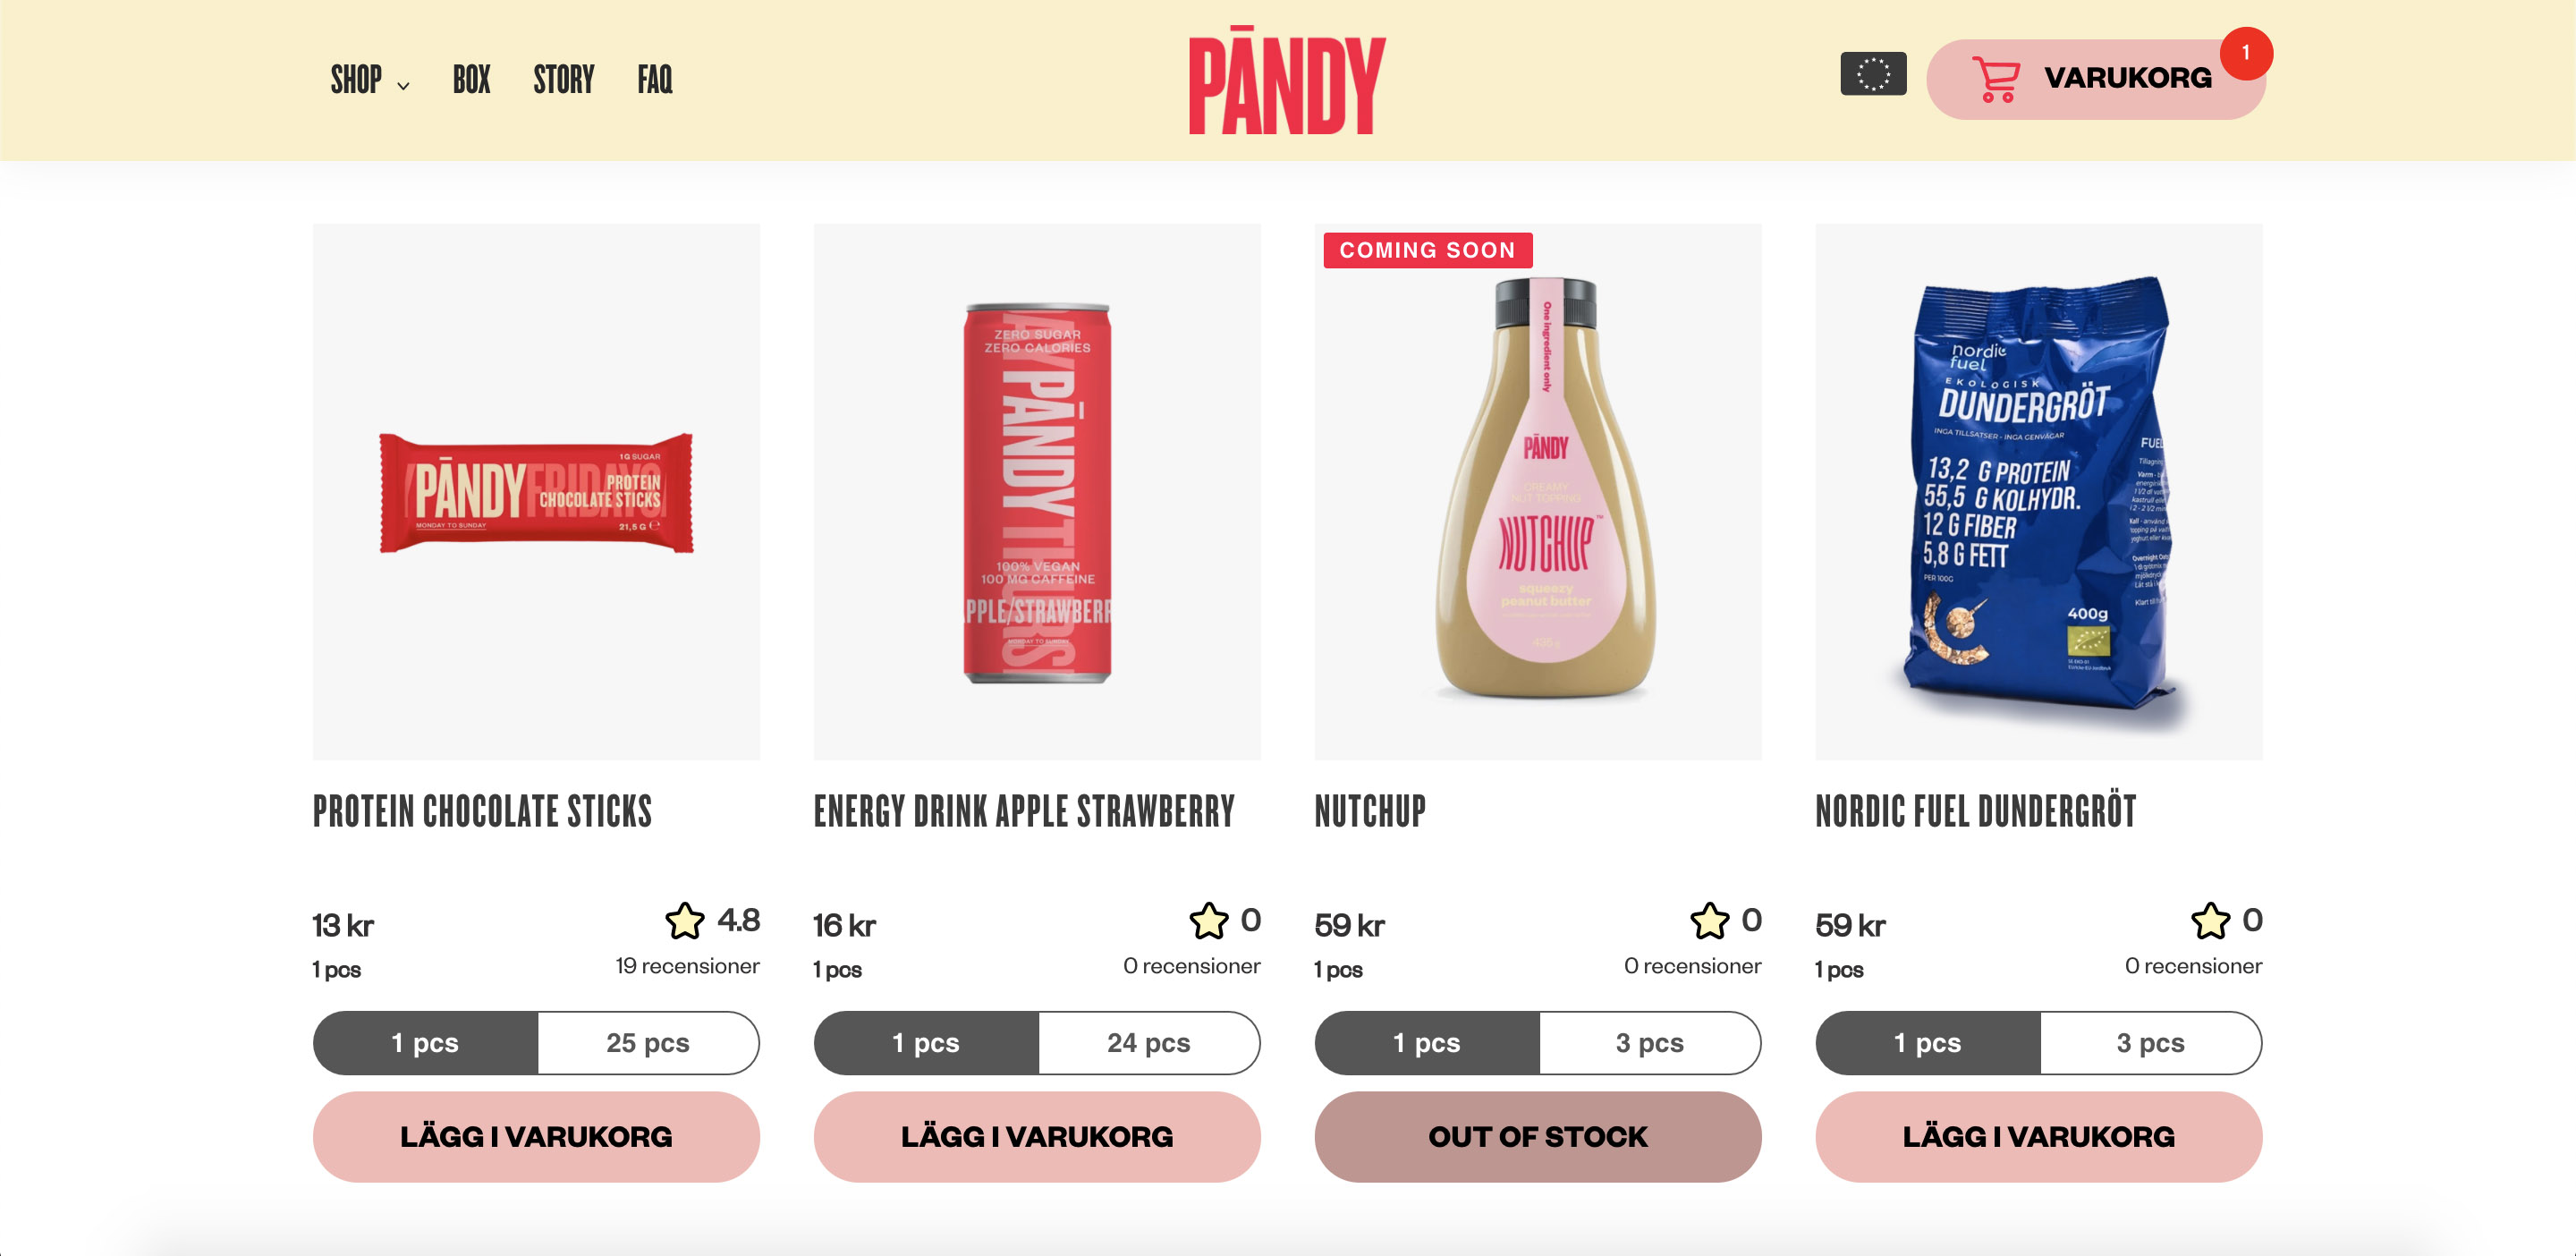 pandy candy snacks